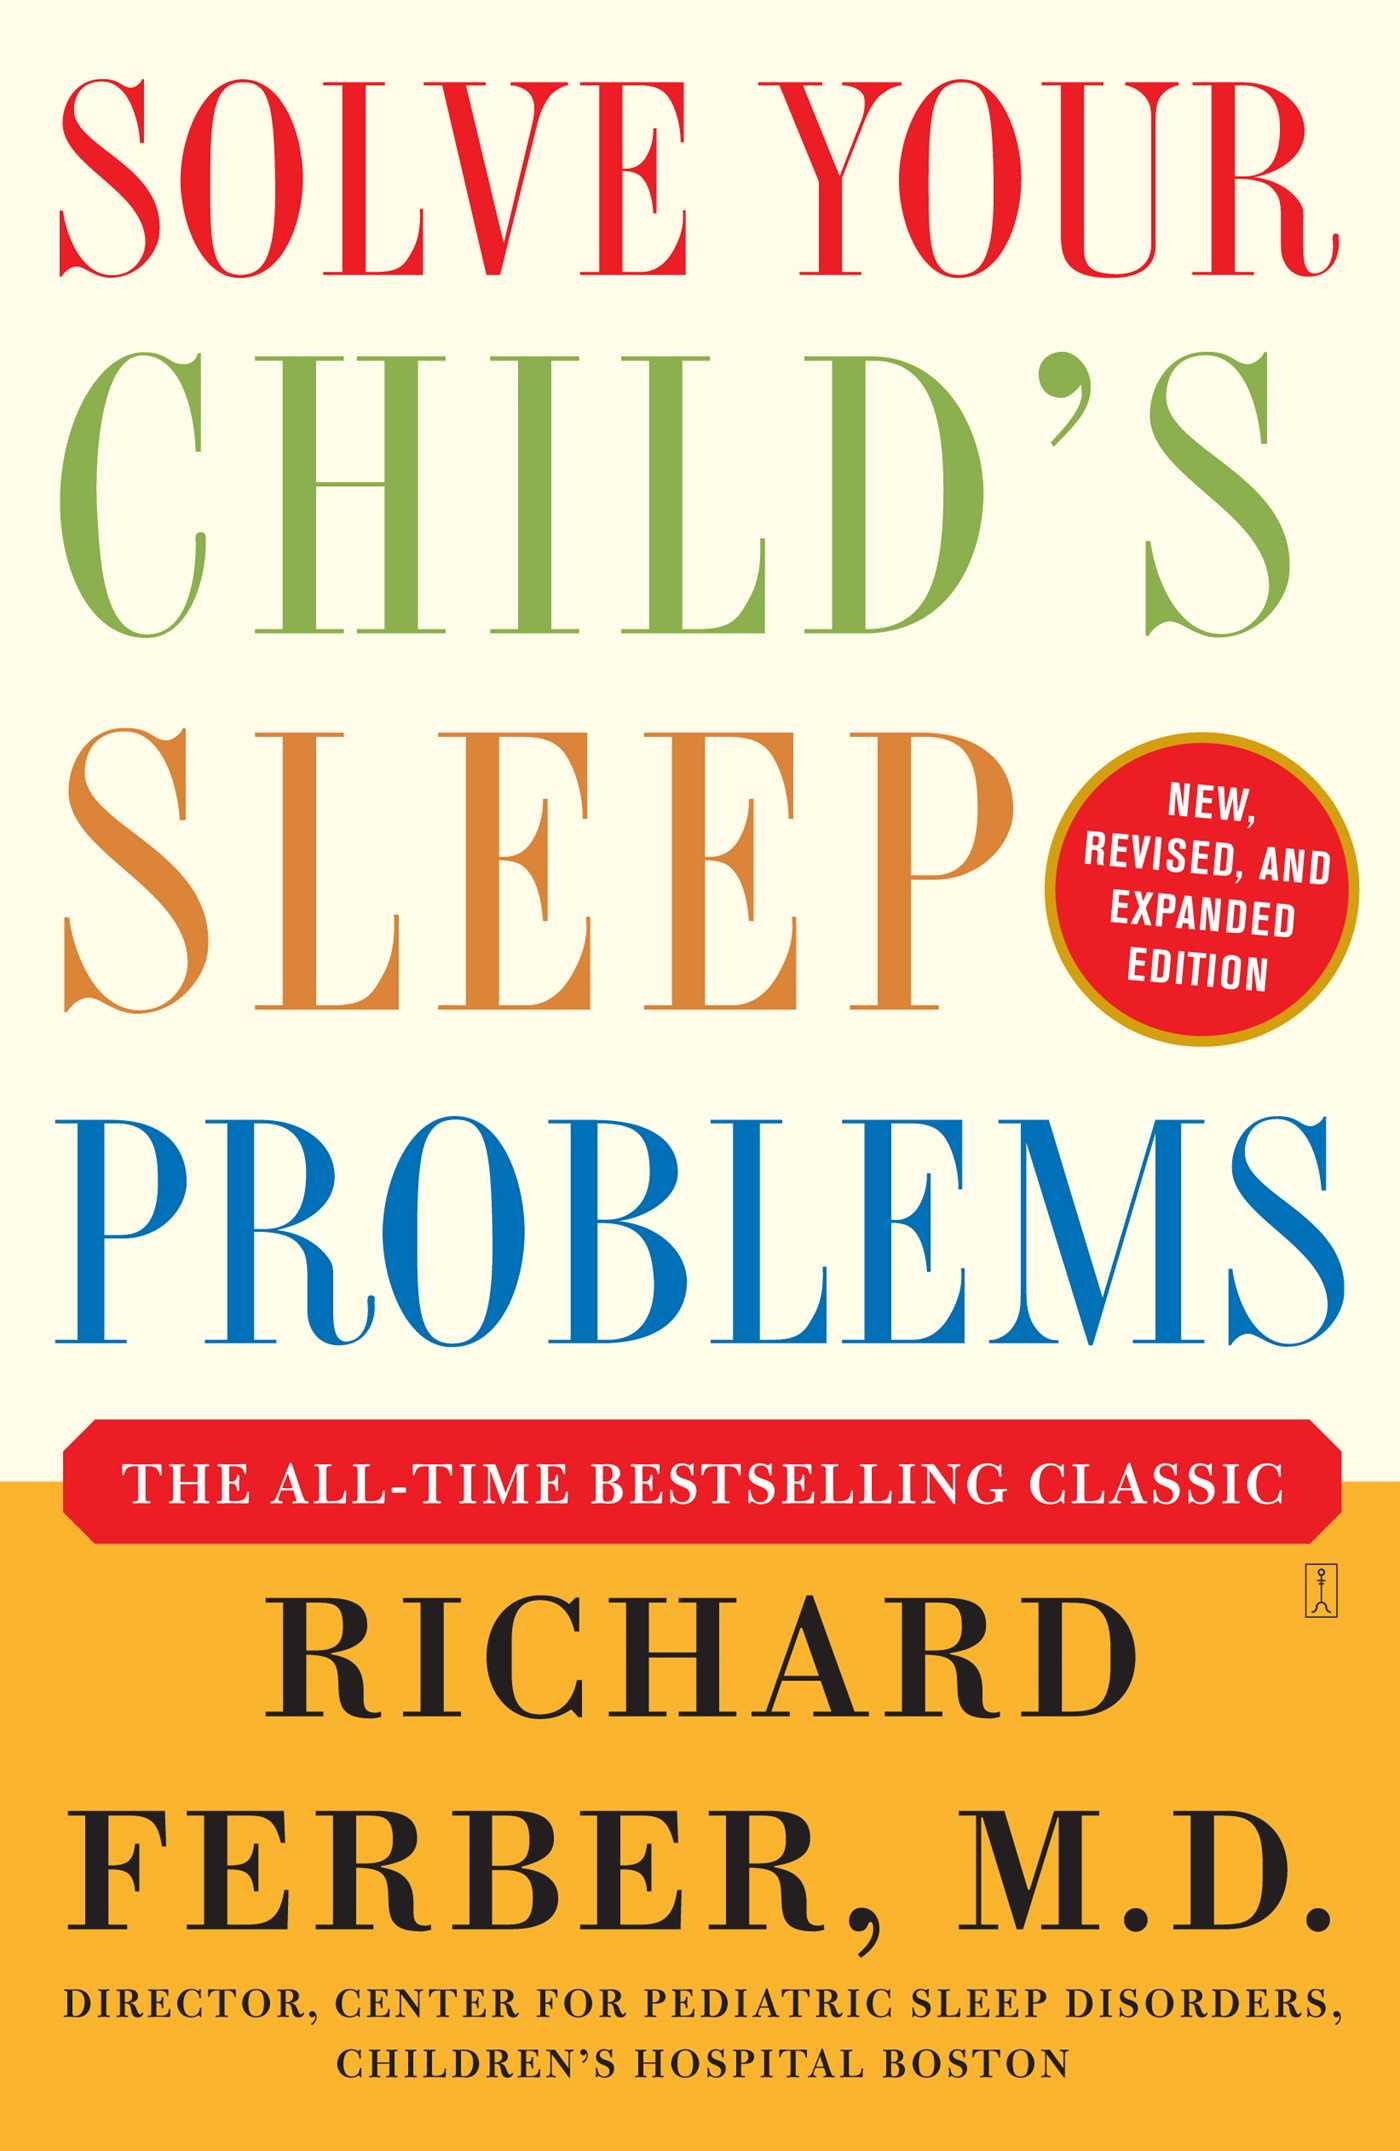 Solve-your-childs-sleep-problems-revised-9780743217668_hr